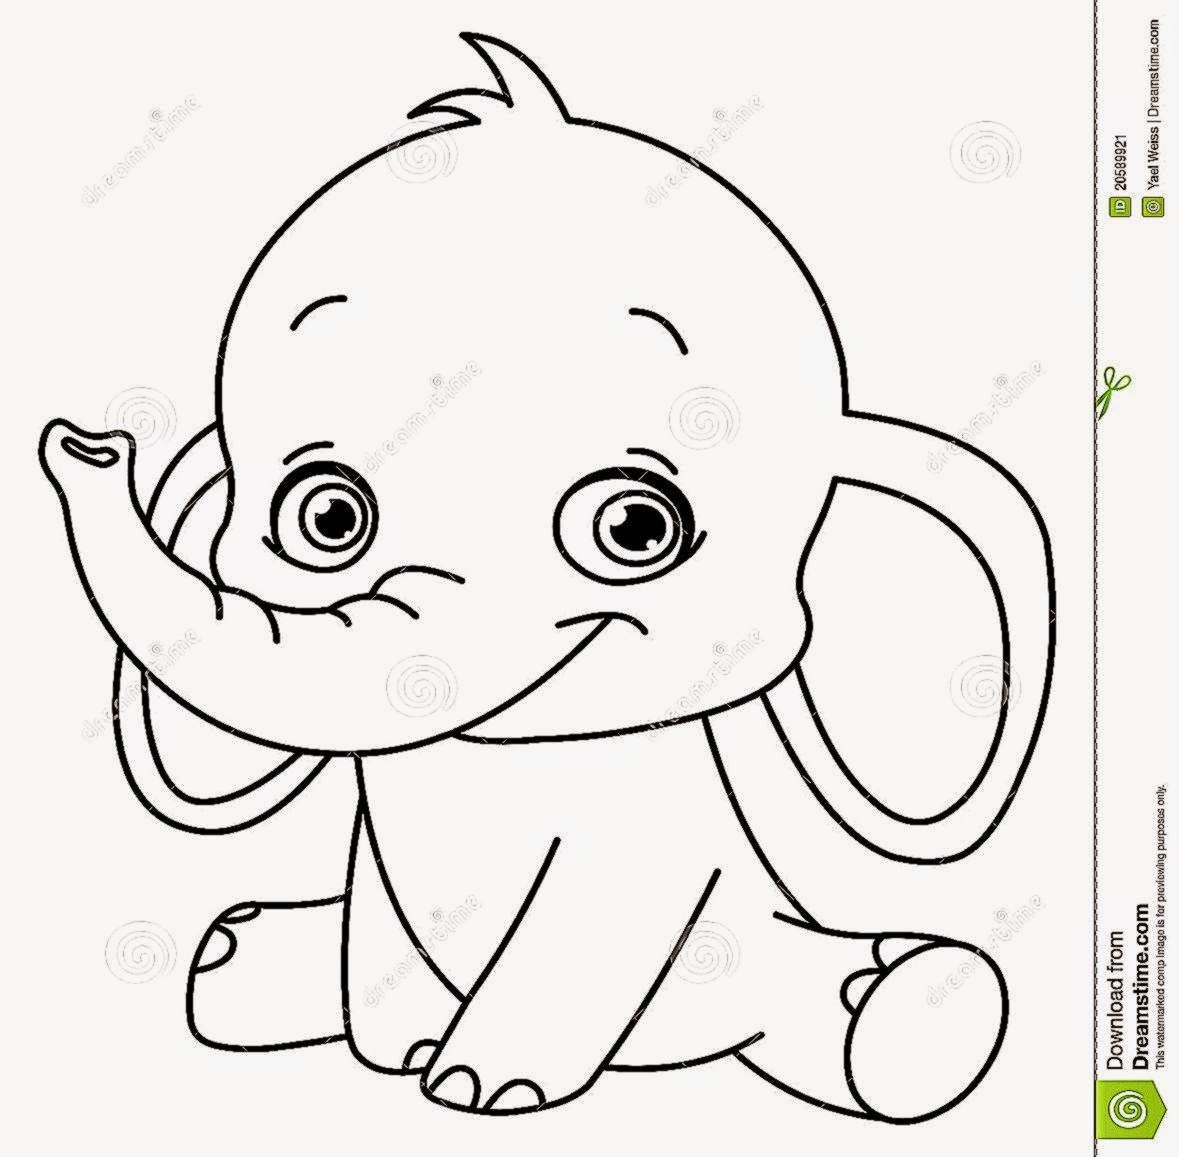 e elephant coloring pages - photo#35